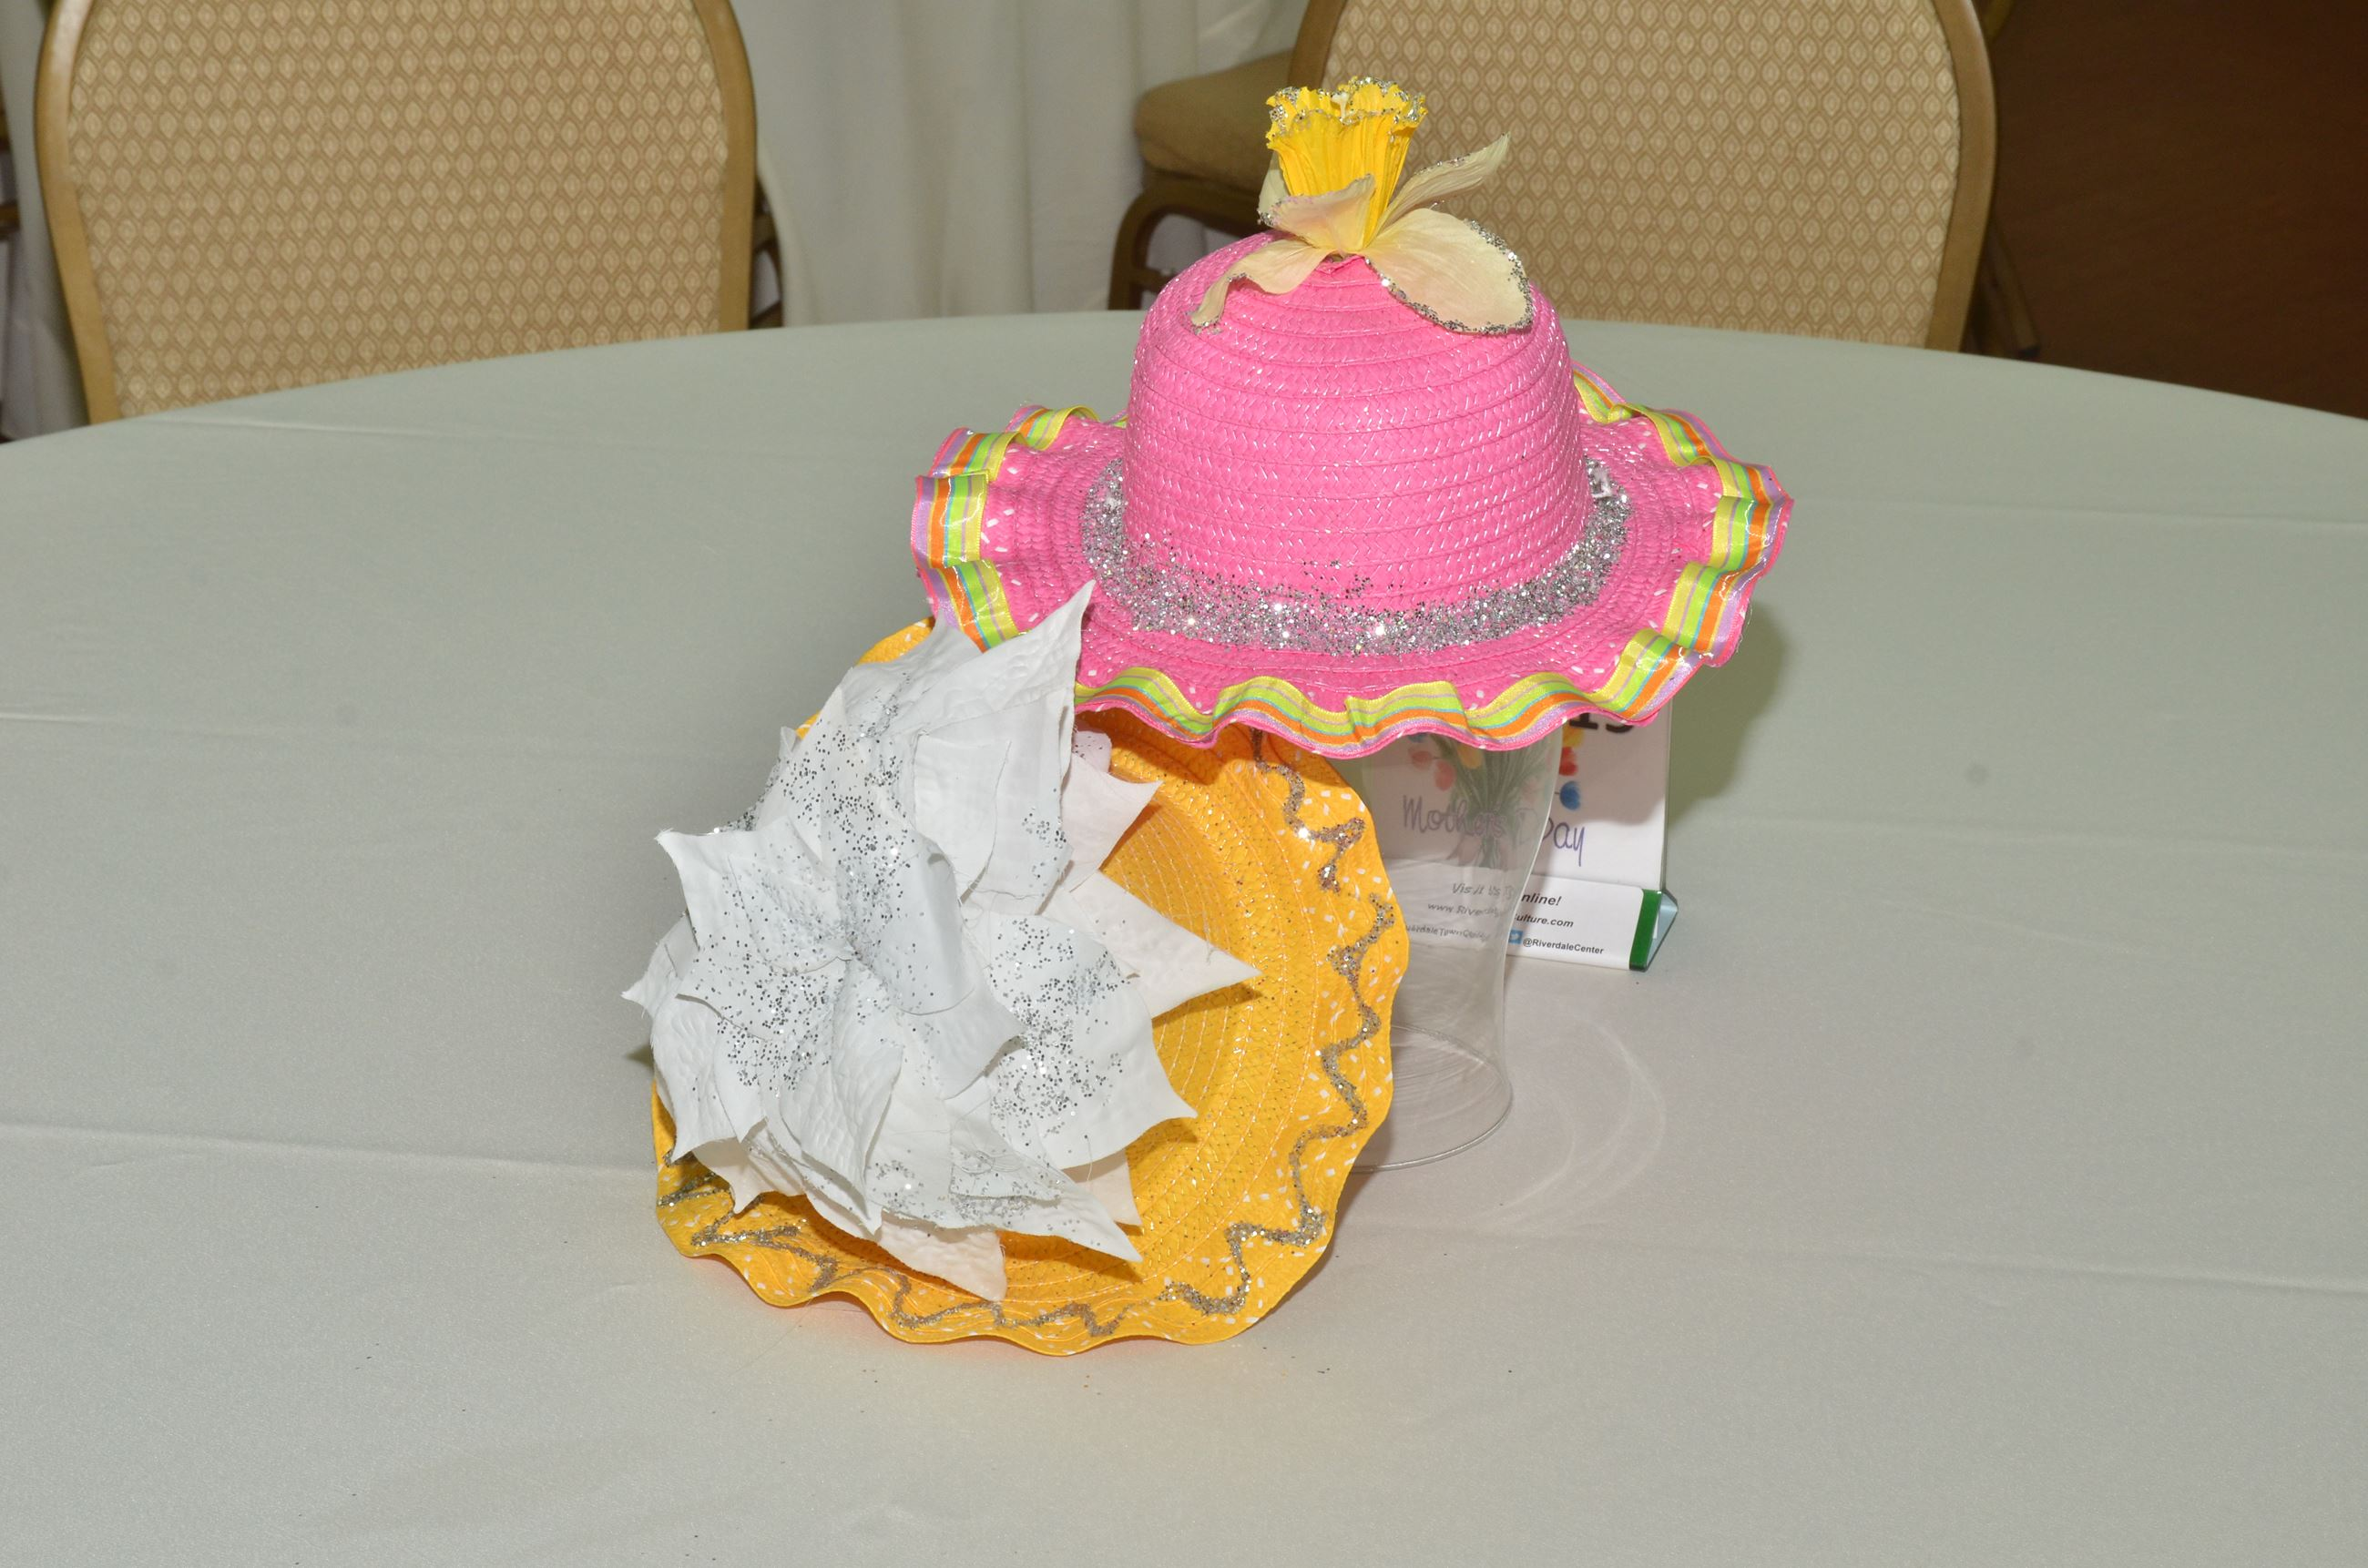 Hat Decoration on Table